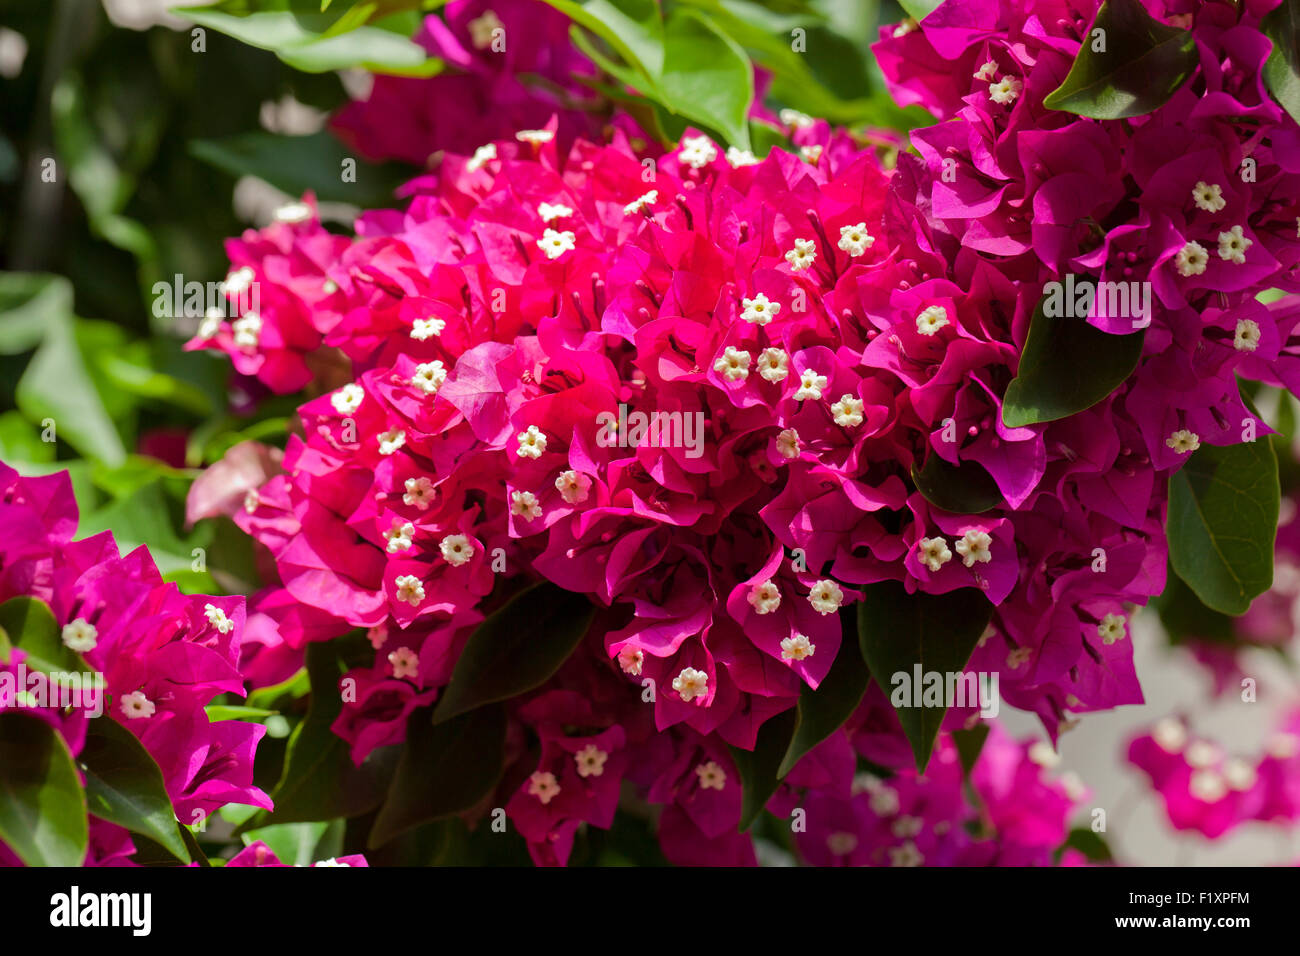 Bougainvillea flowers - Stock Image